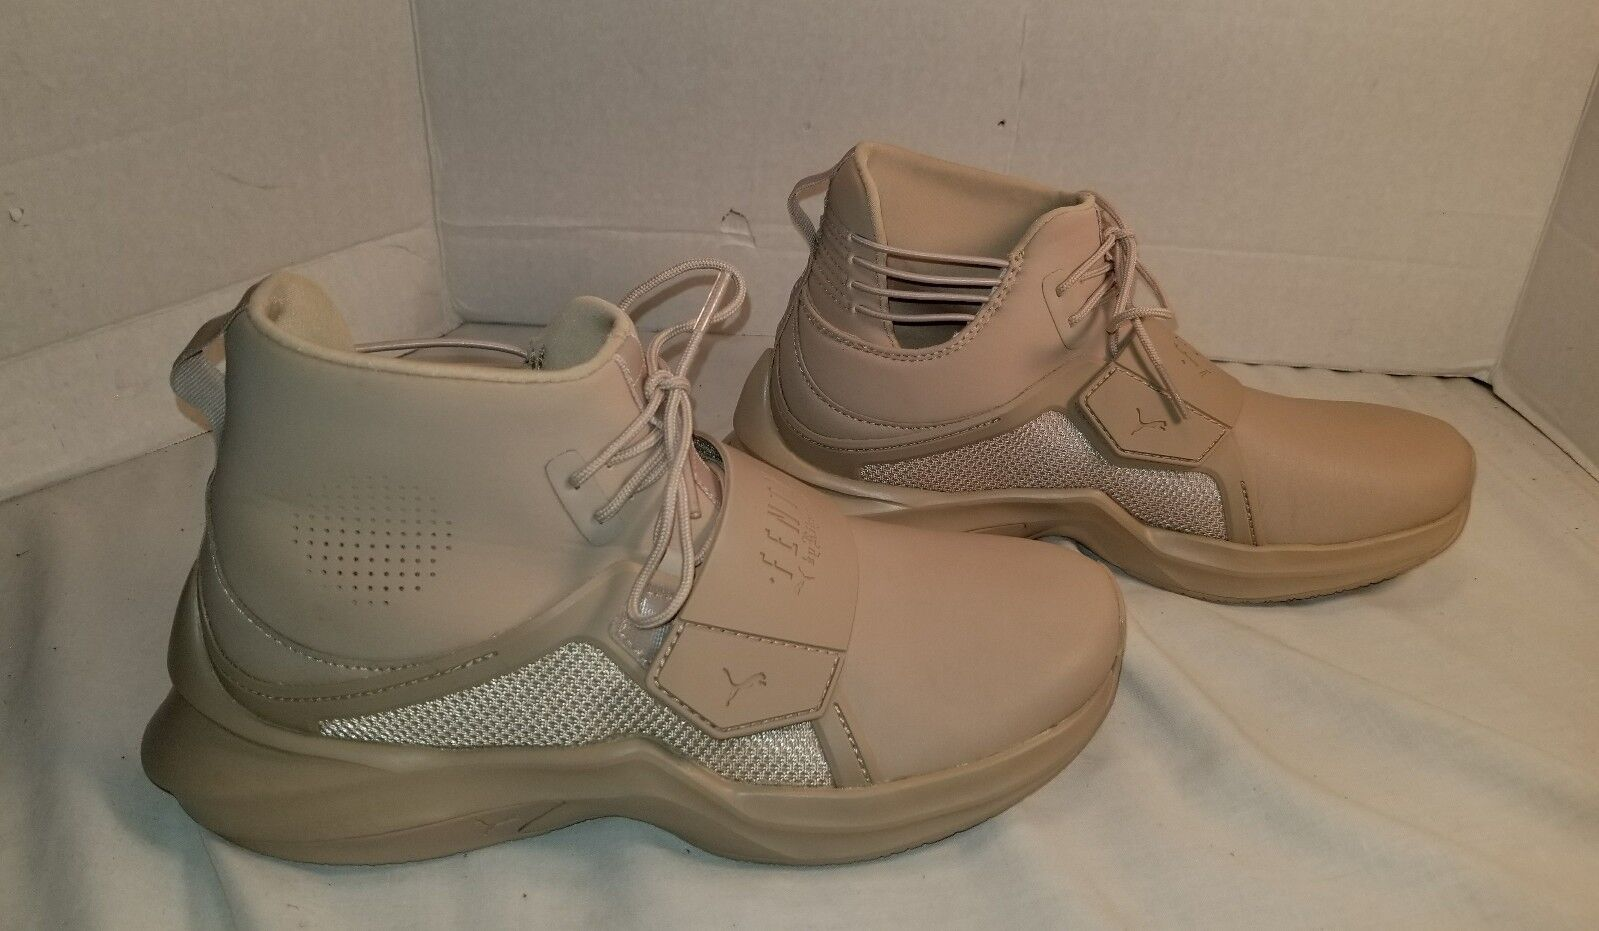 NEW PUMA FENTY FENTY FENTY BY RIHANNA SEASAME TRAINER SNEAKERS WOMEN'S SIZE US 7 6d389b